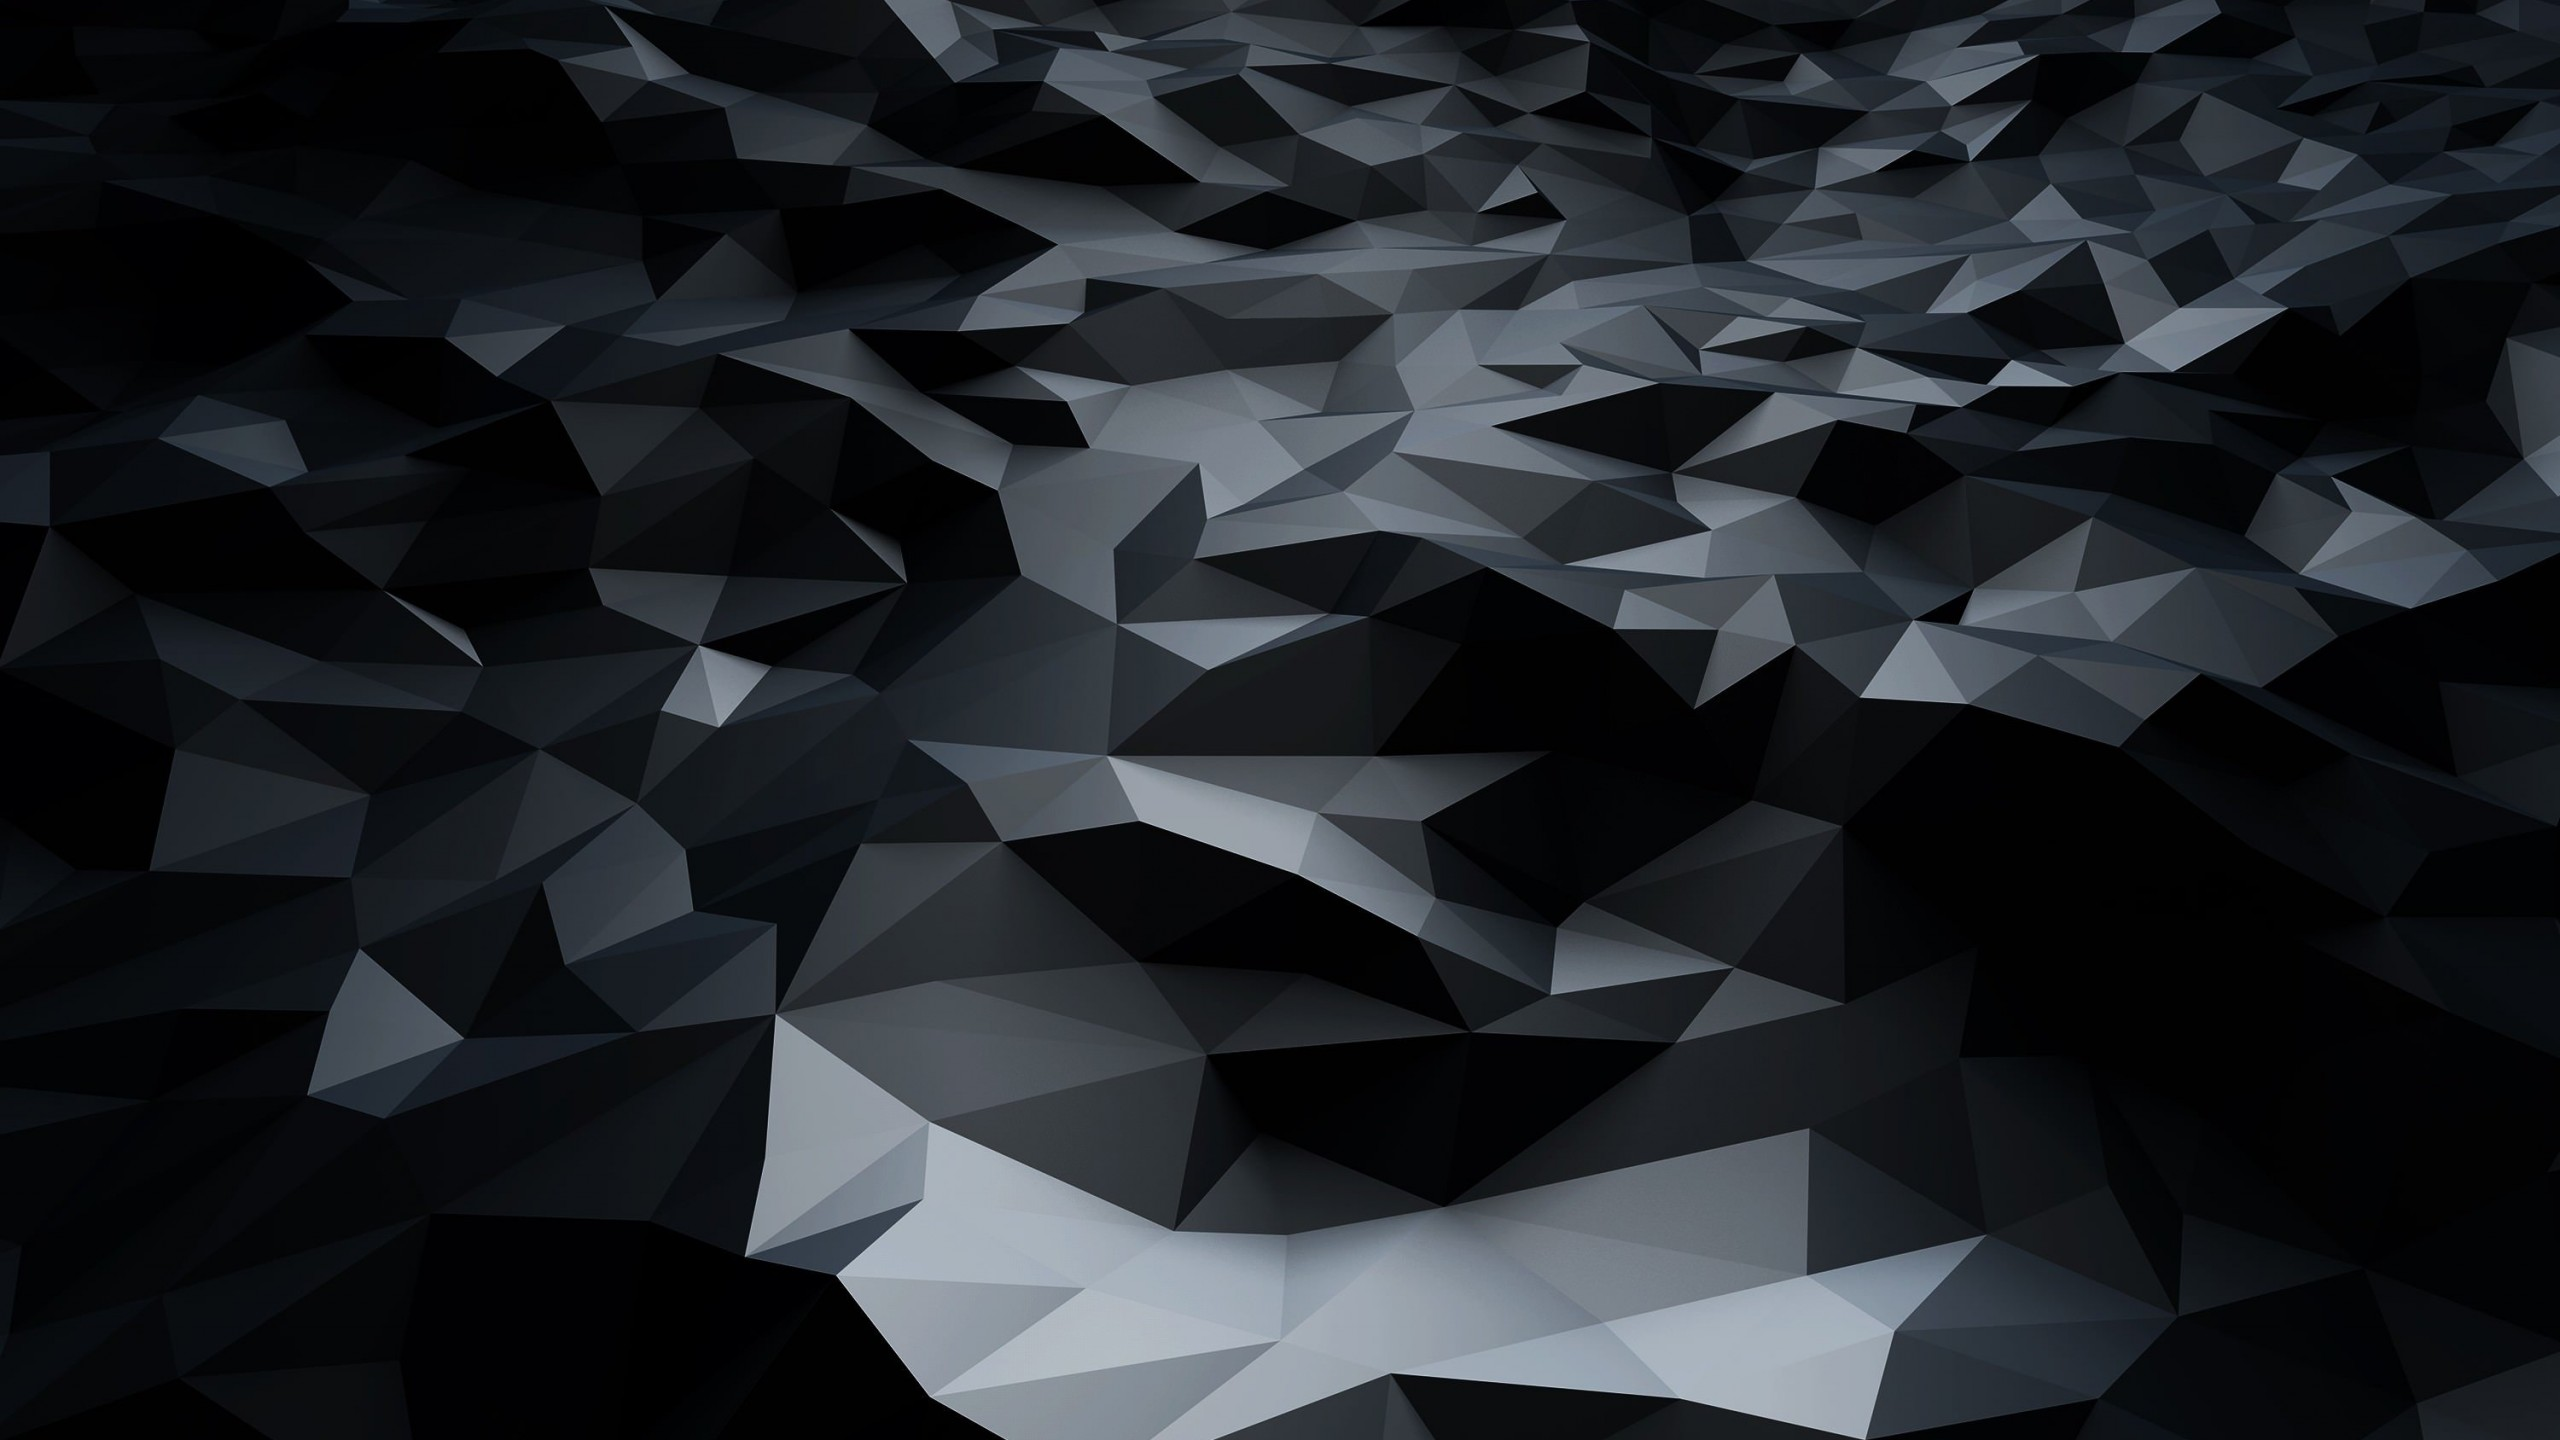 Download Abstract Black Low Poly HD Wallpaper For 2560 X